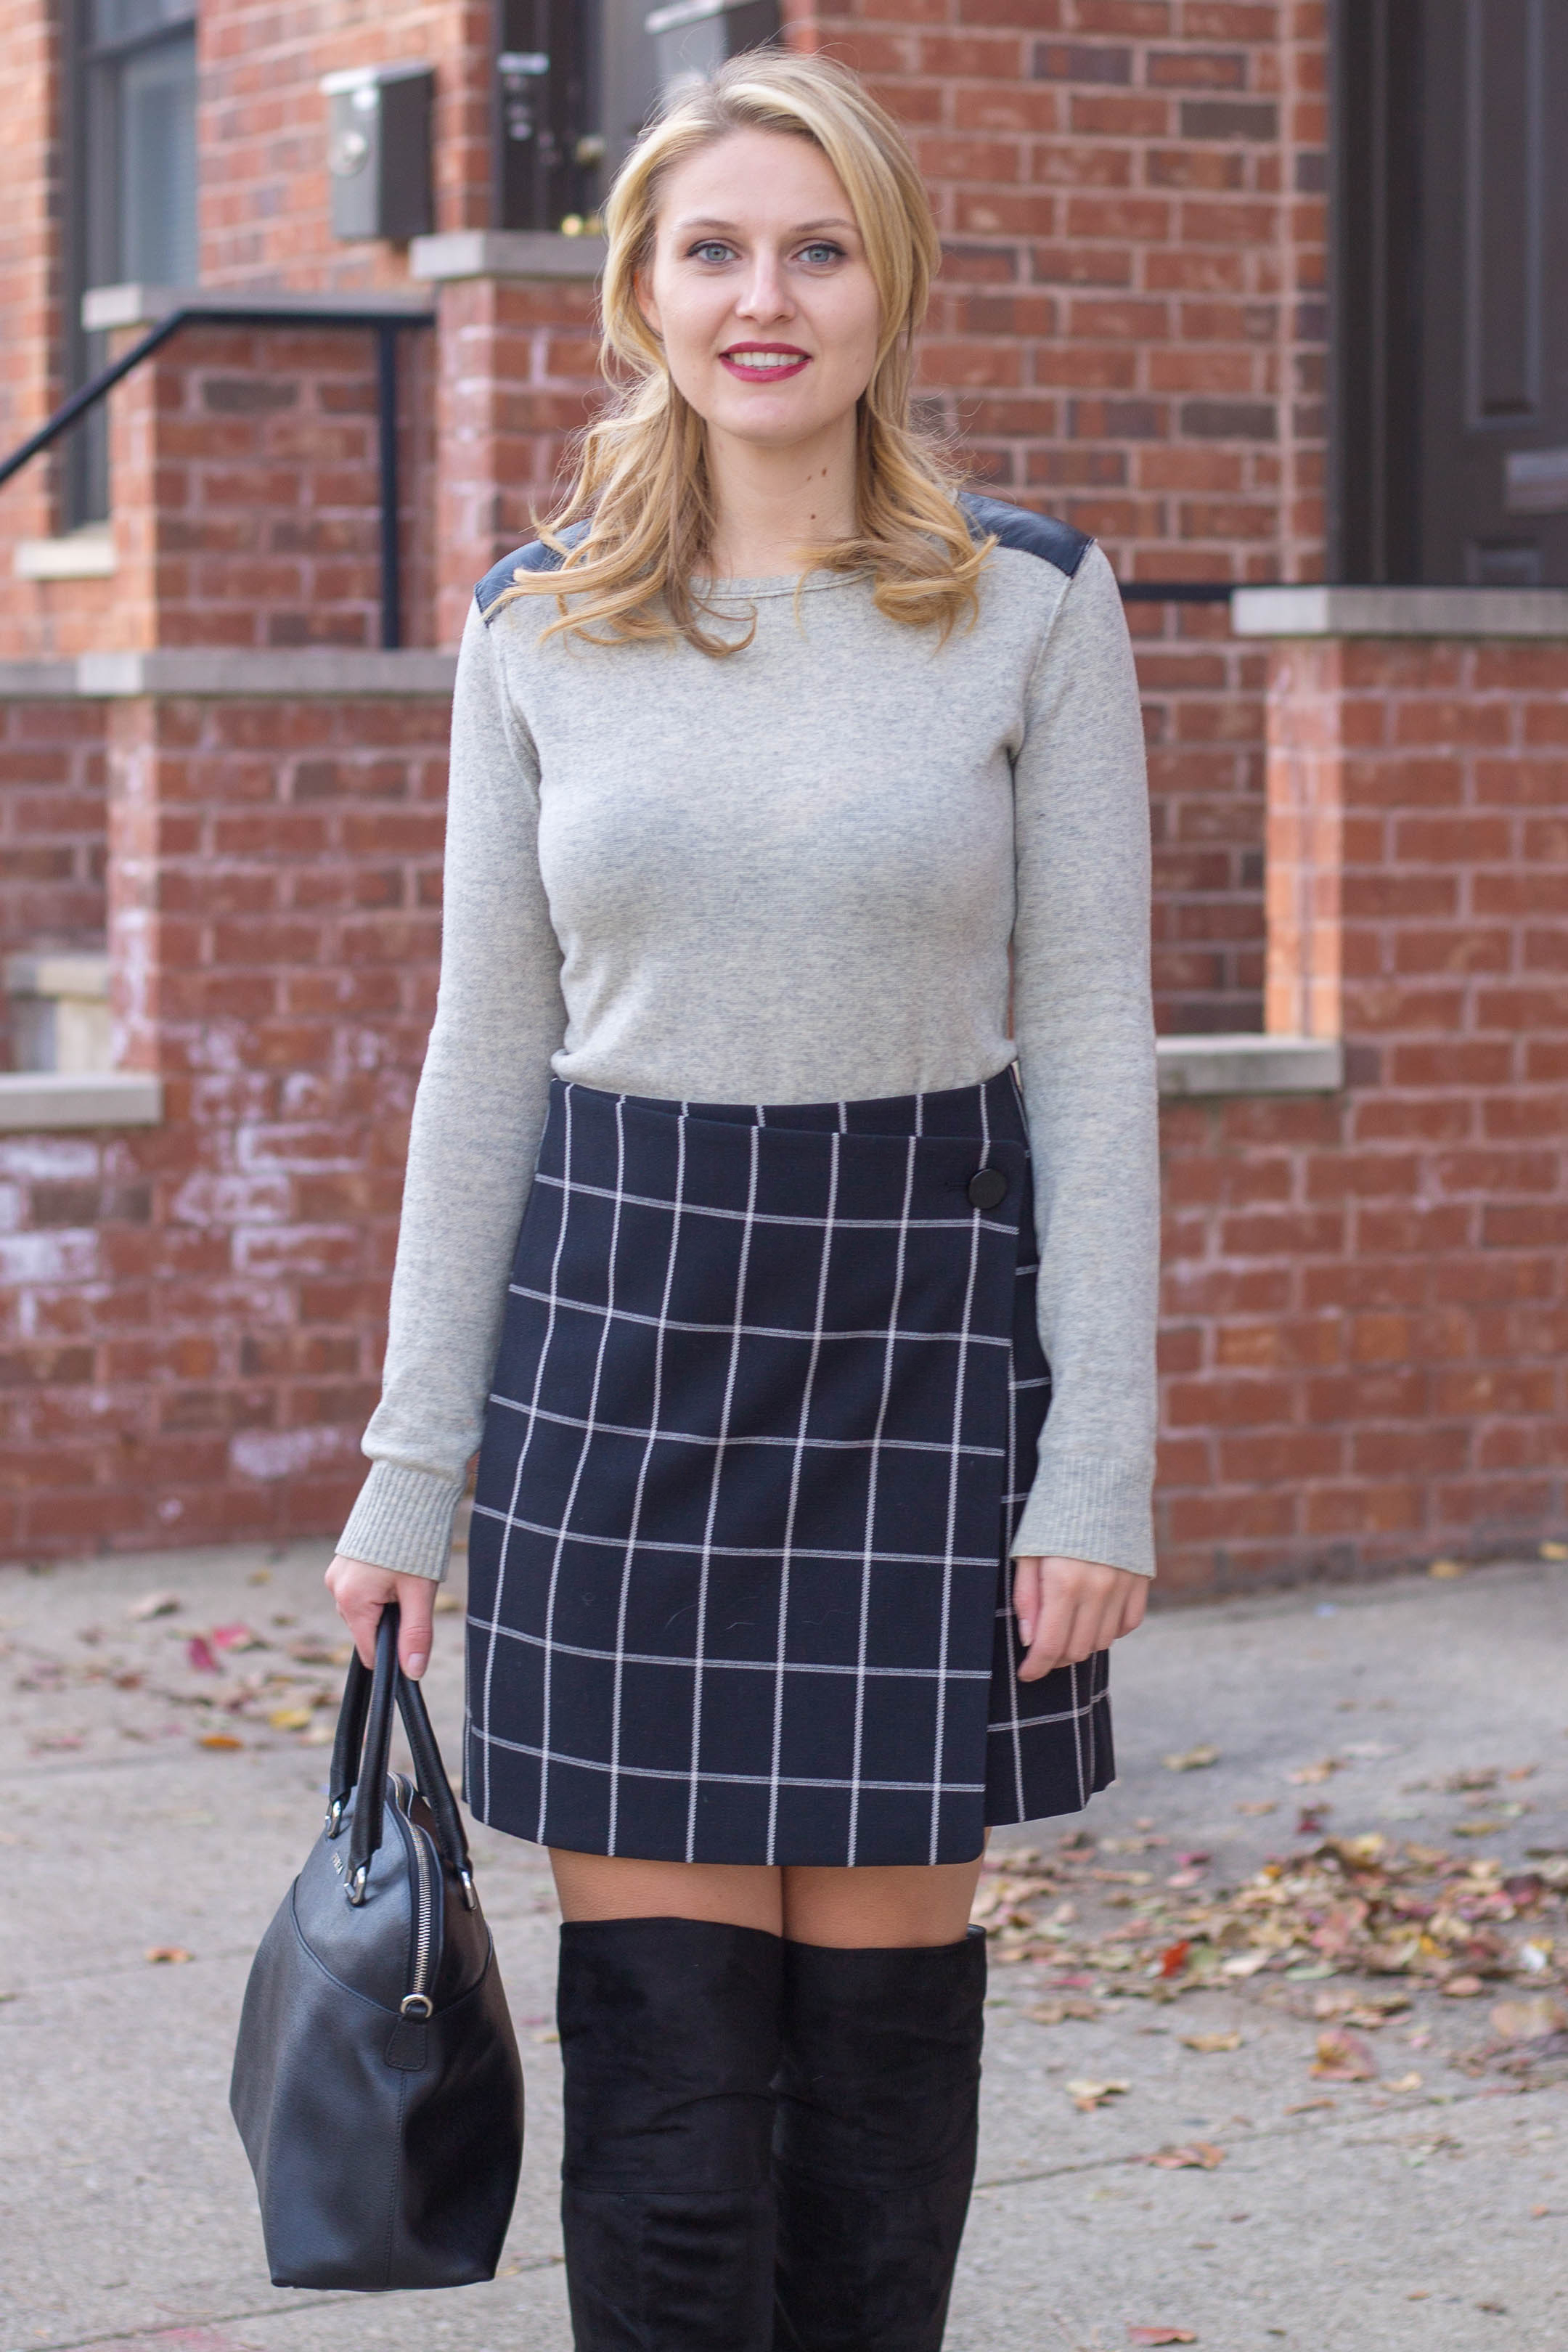 A navy and white windowpane print skirt from LOFT for under $100